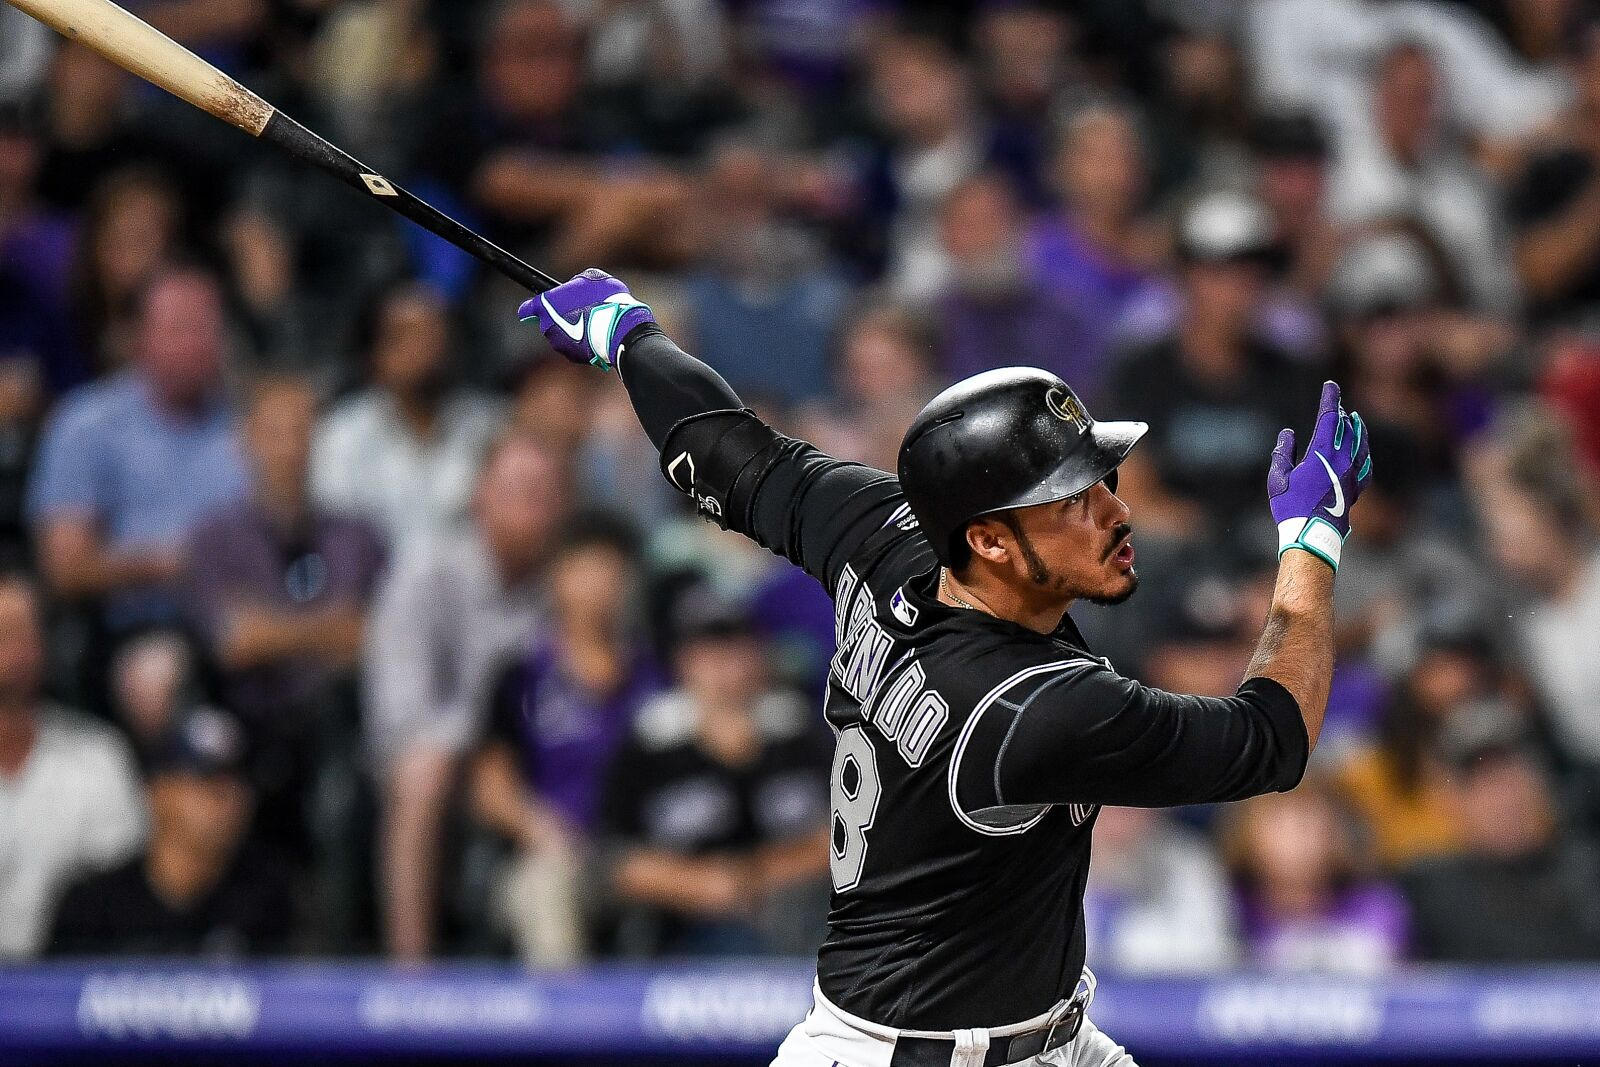 Here's why the St. Louis Cardinals should wait 2-years for Nolan Arenado